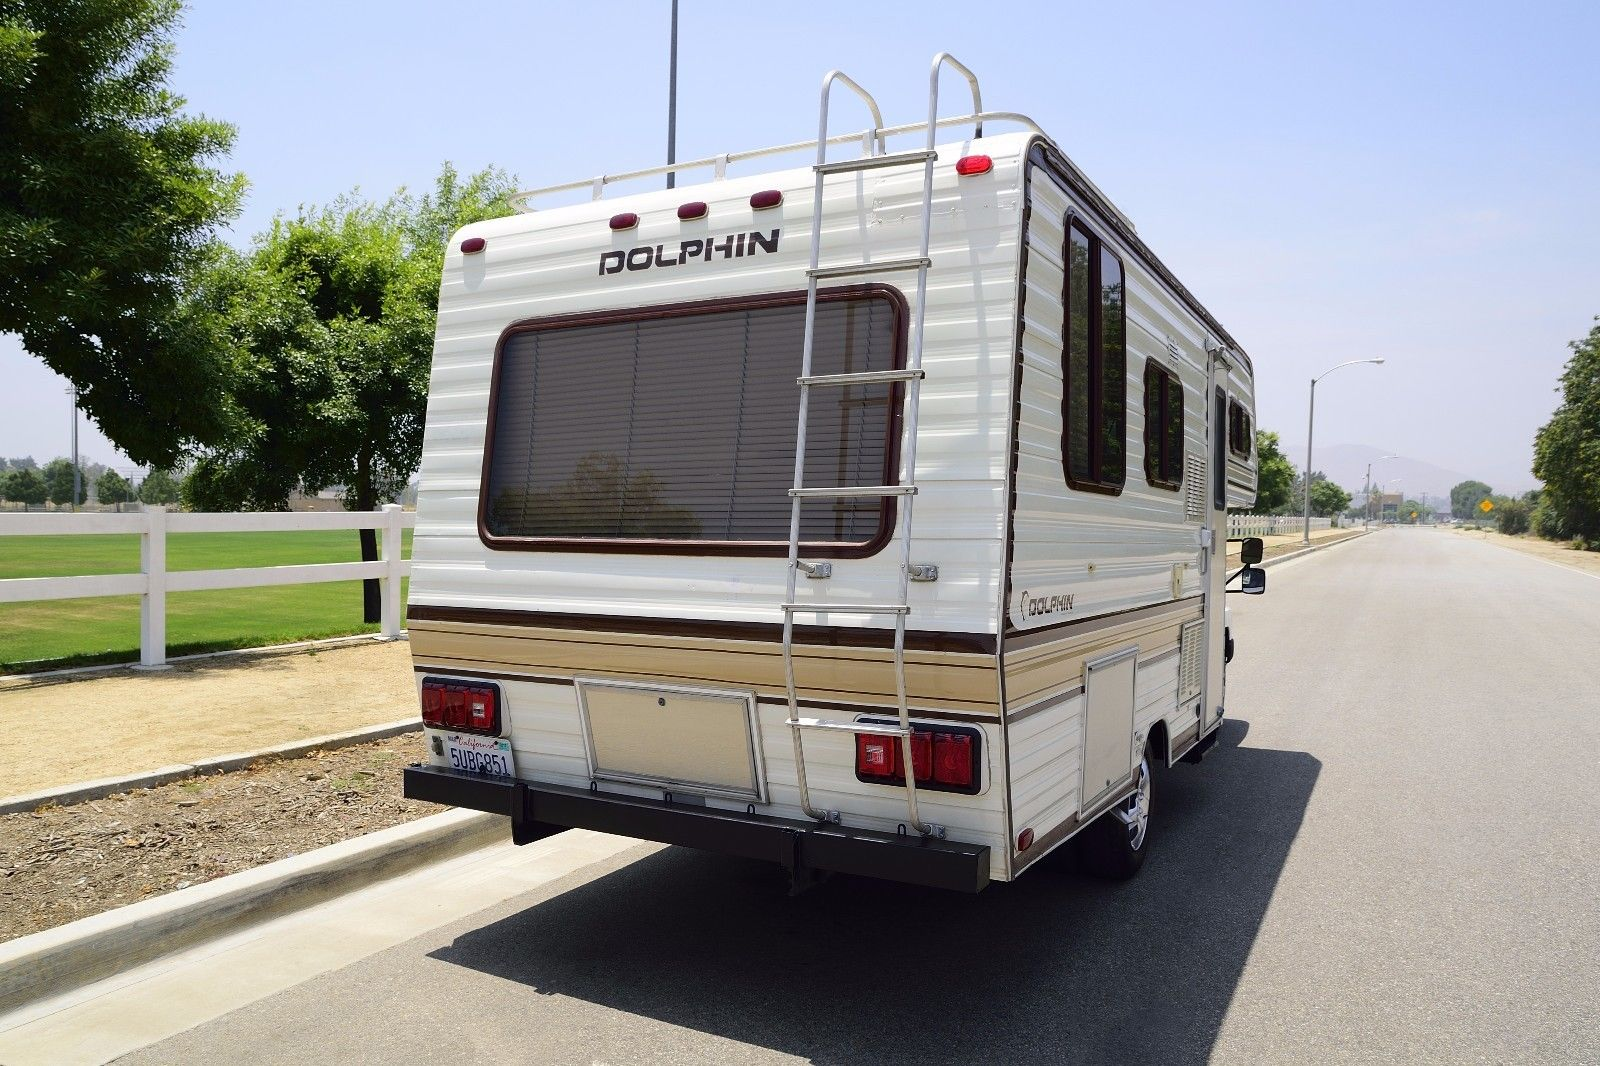 1985 Toyota Dolphin 20ft 4cyl Auto Motorhome For Sale In Orem Utah